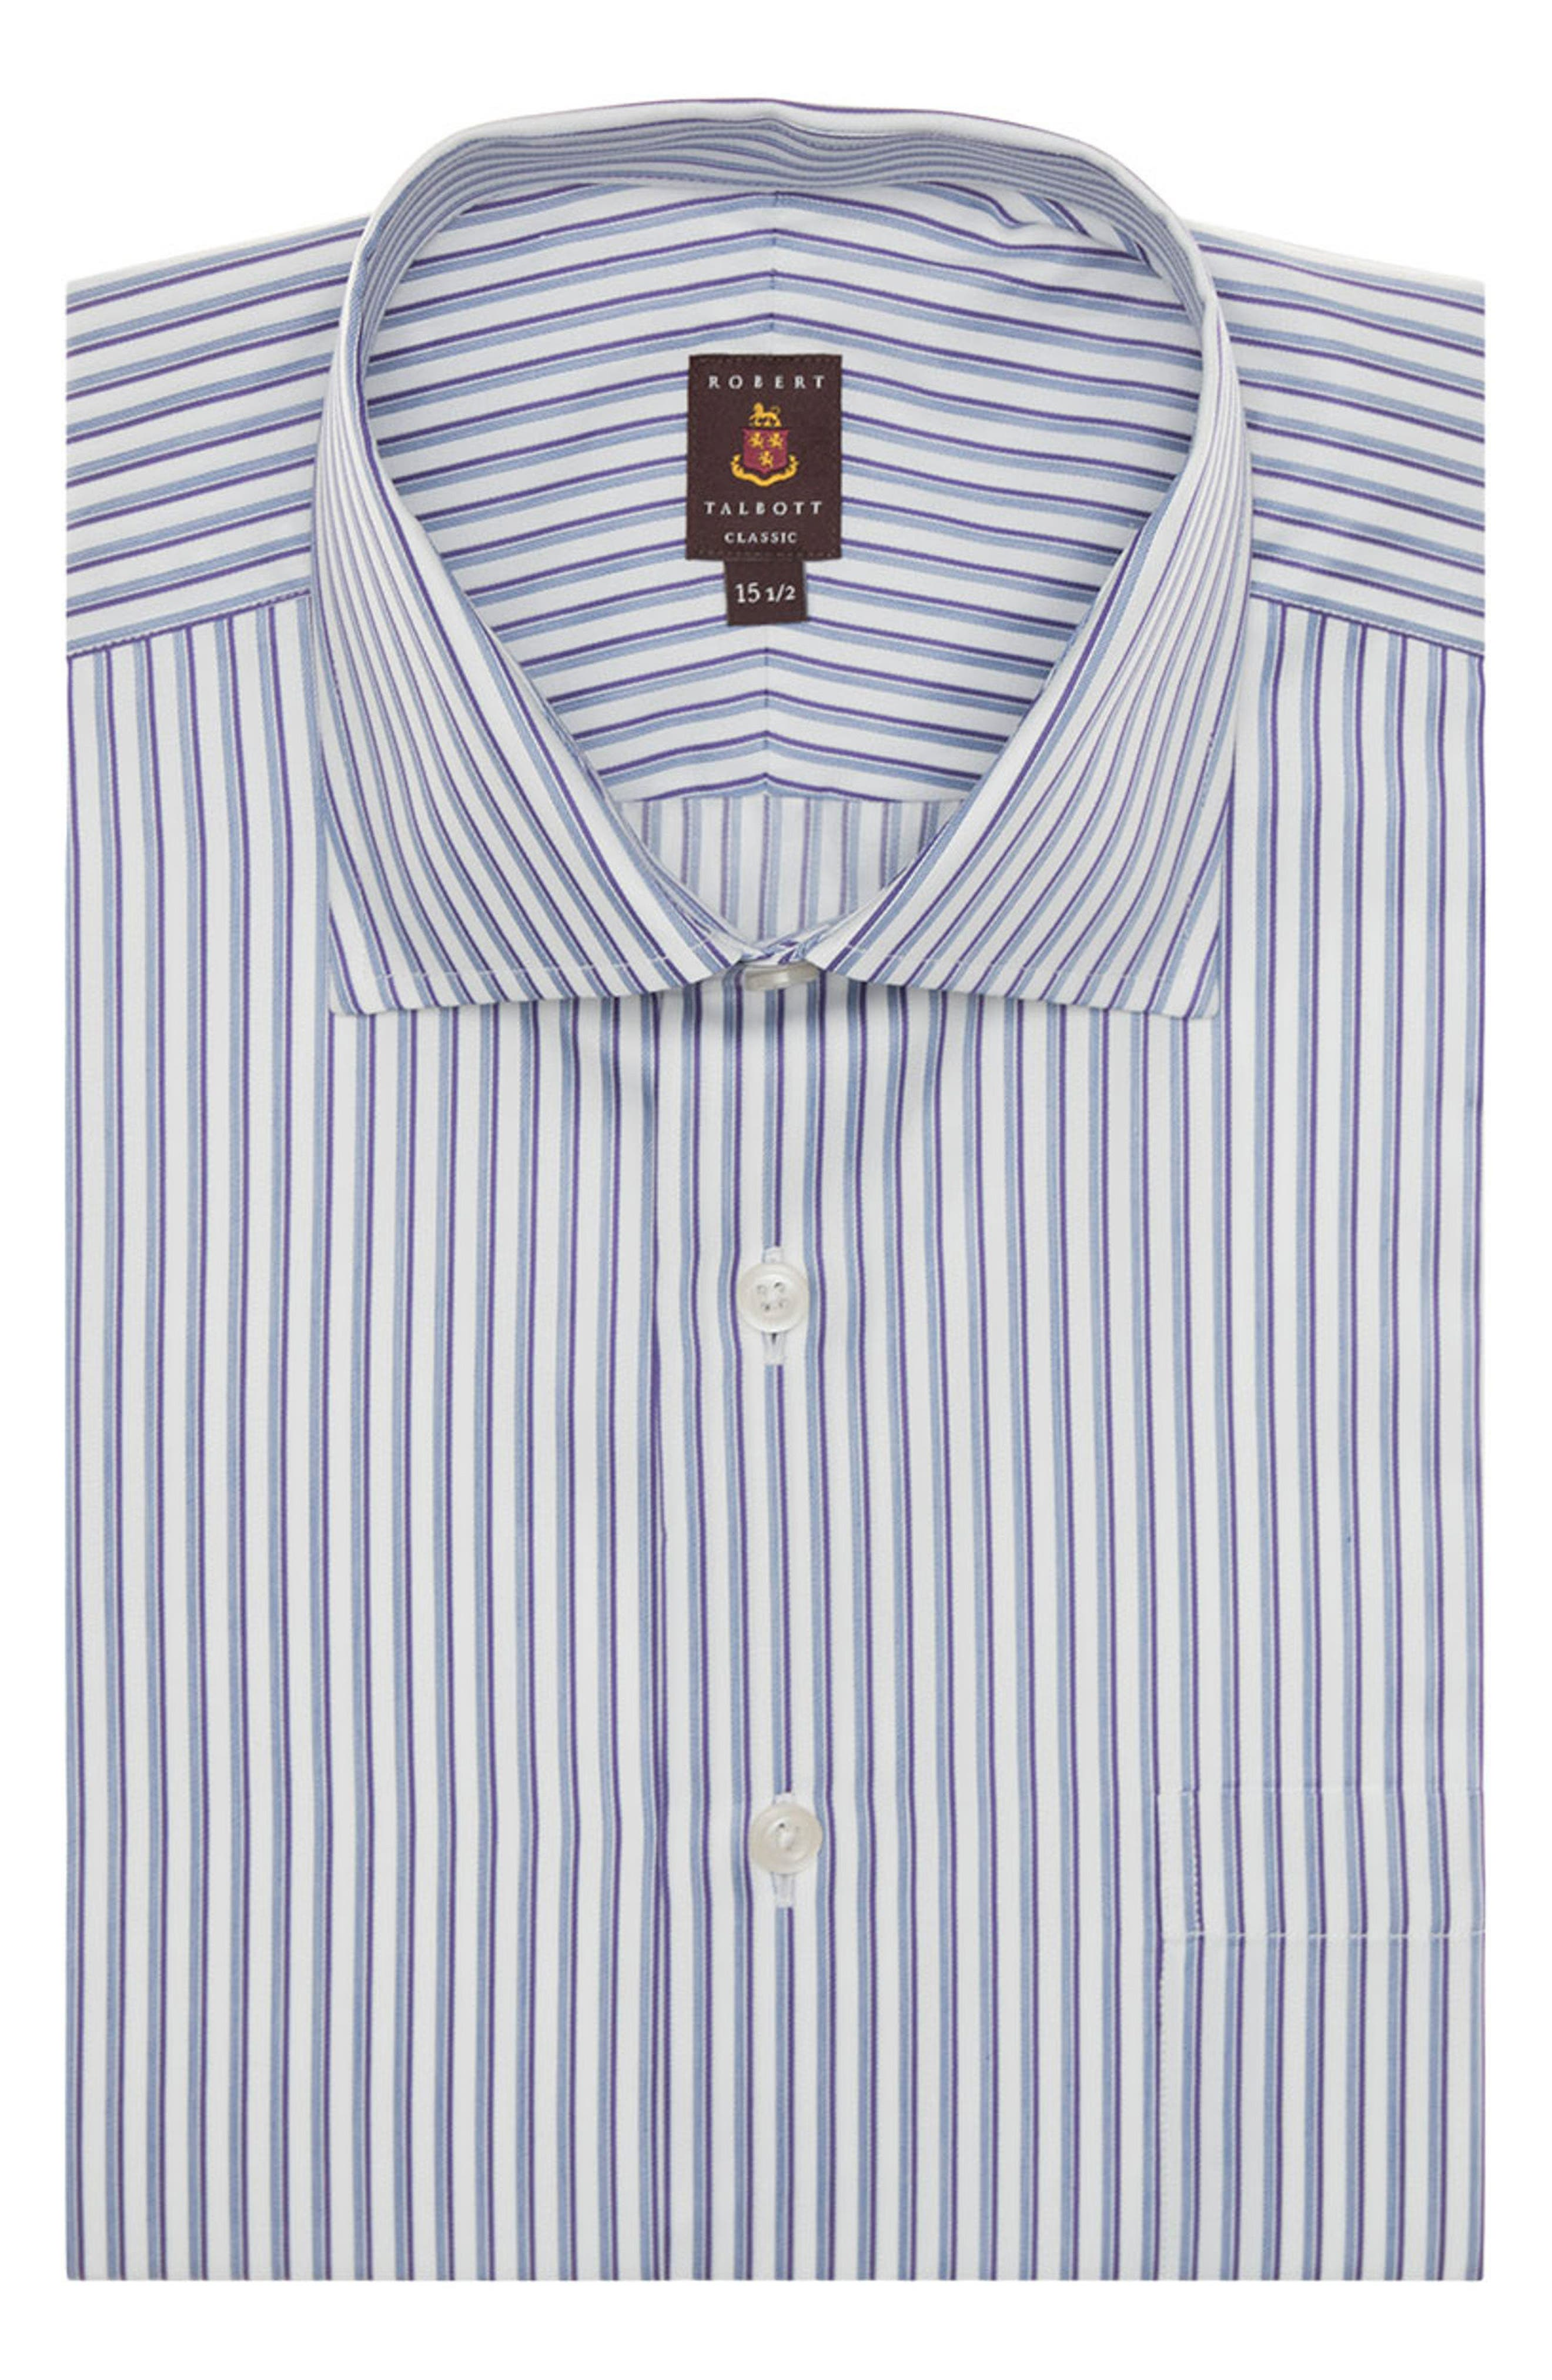 Tailored Fit Stripe Dress Shirt,                         Main,                         color, 500